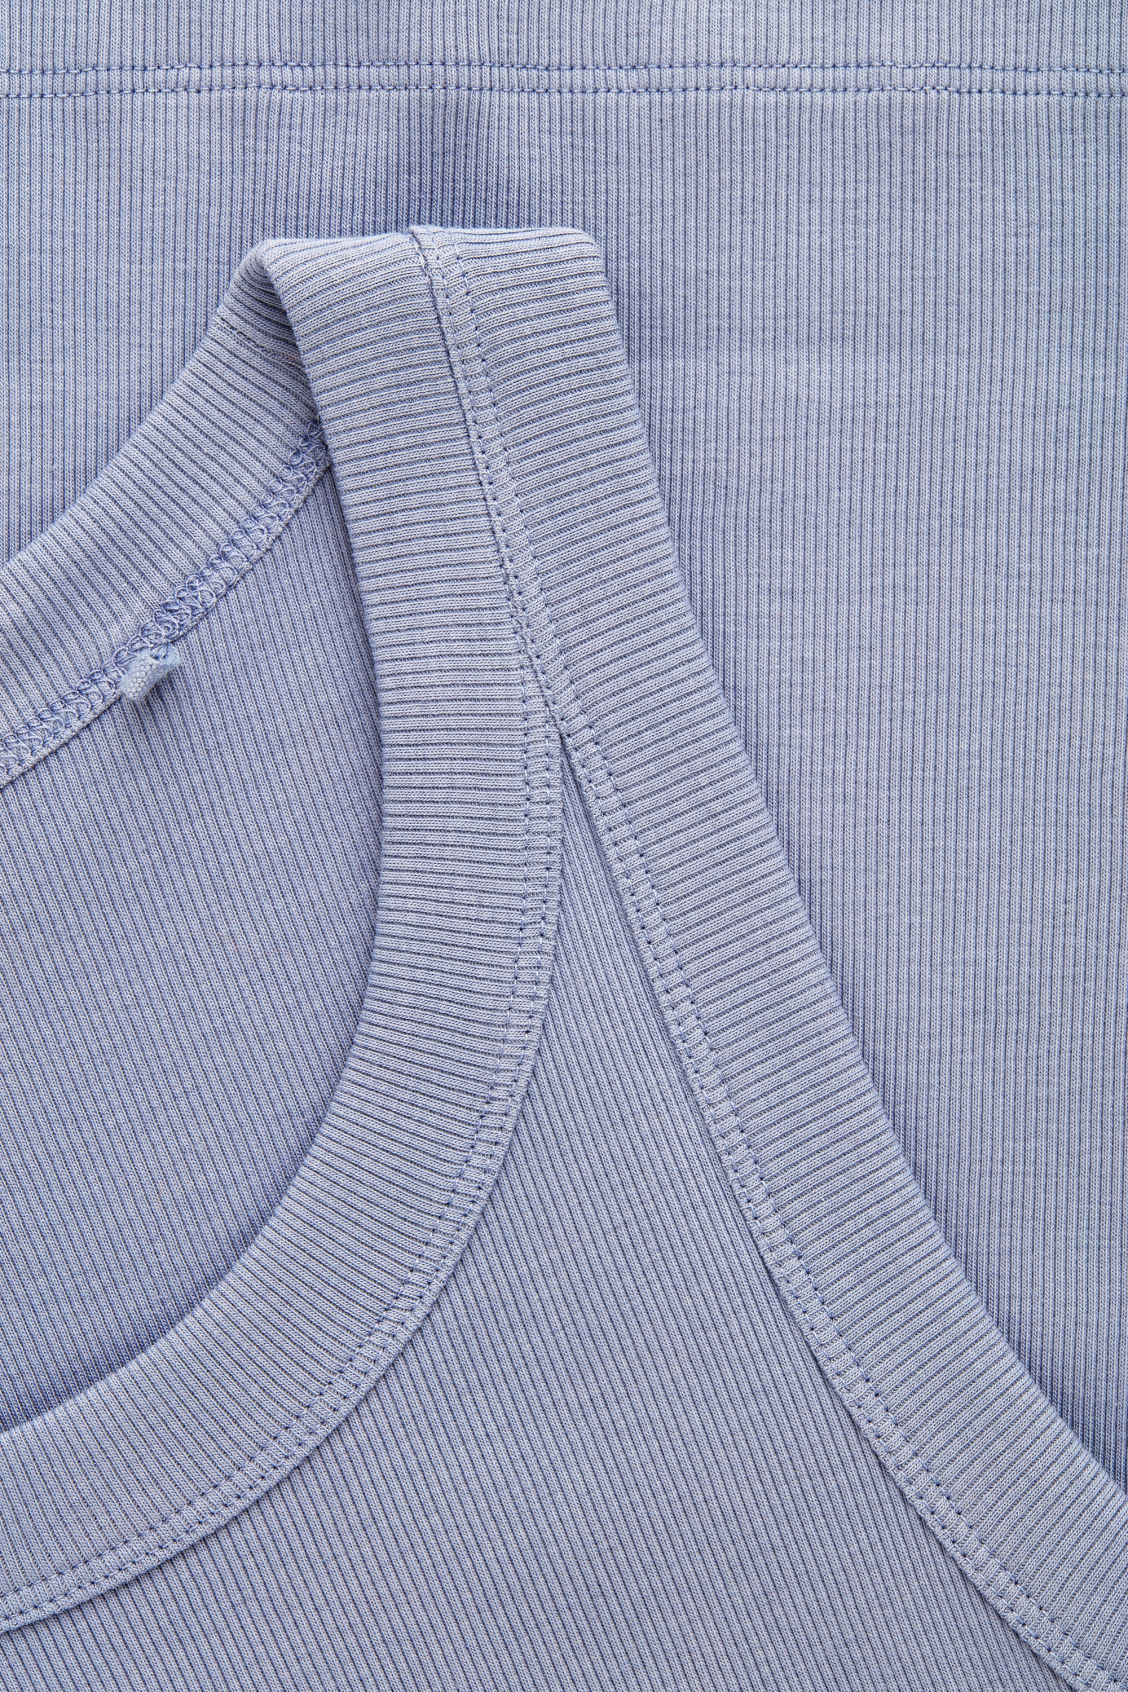 Side image of Cos ribbed vest top in blue